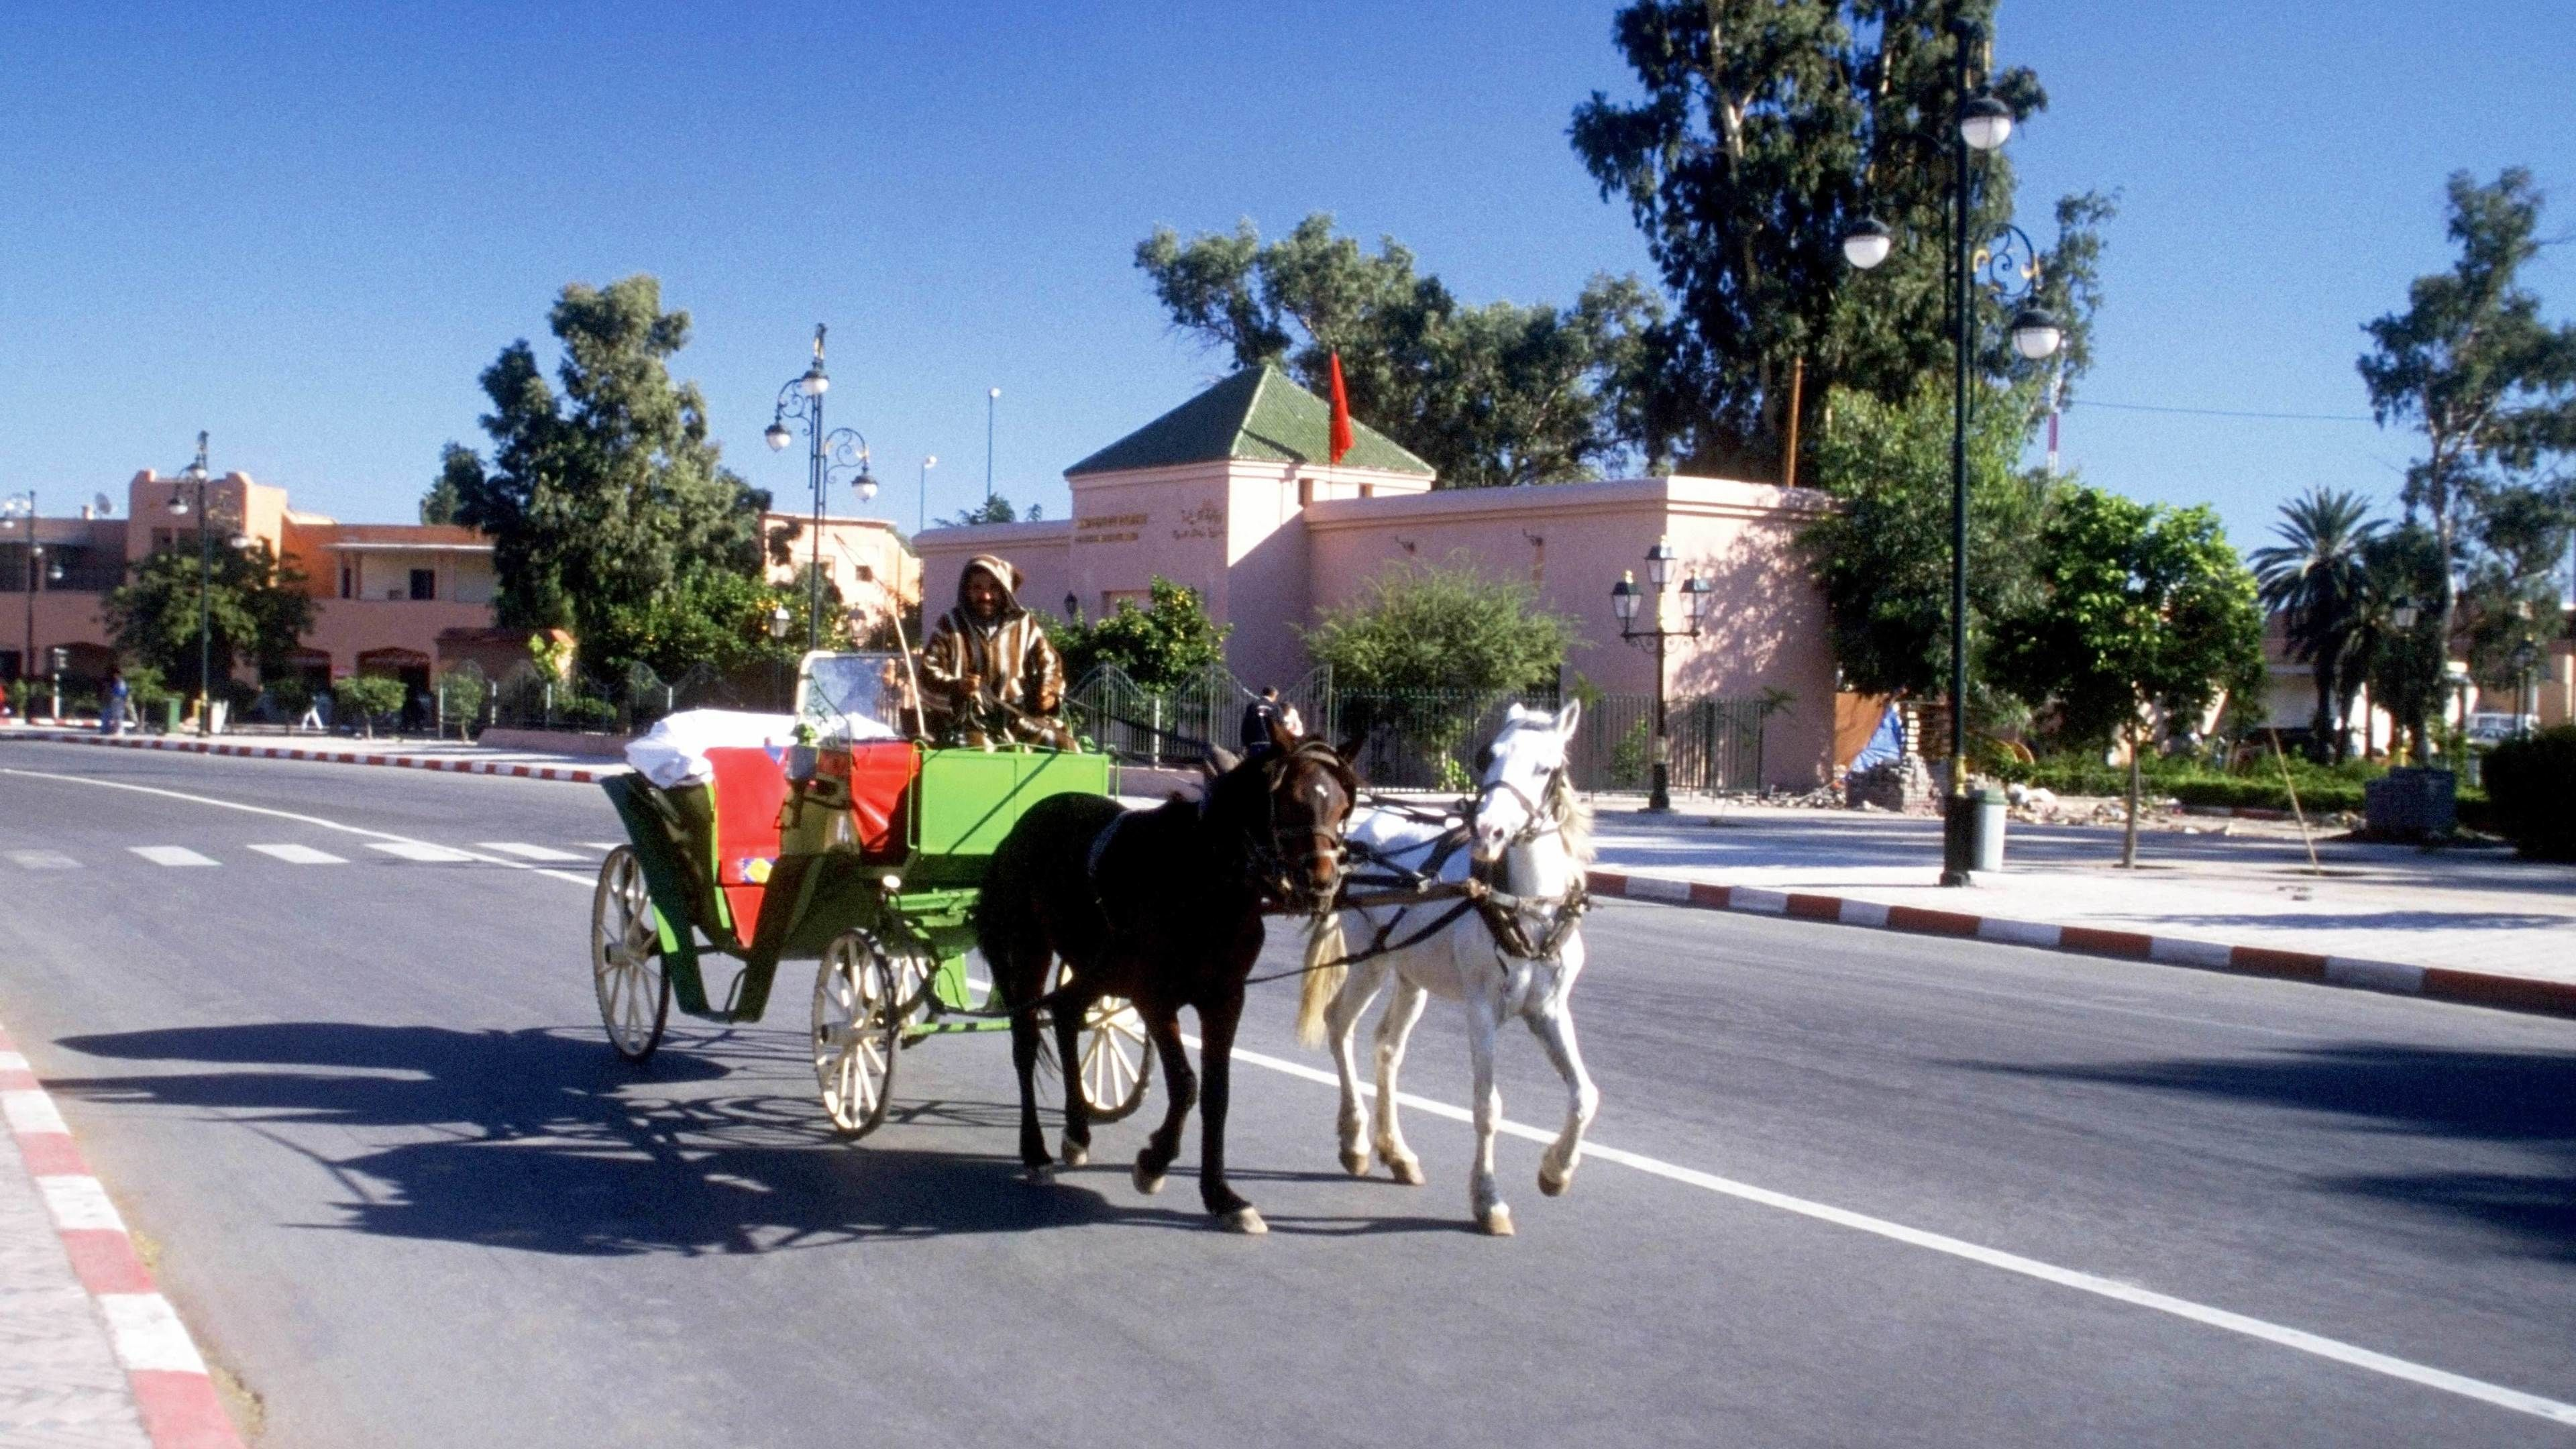 Horse-drawn carriage ride during the sunny day in Marrakech